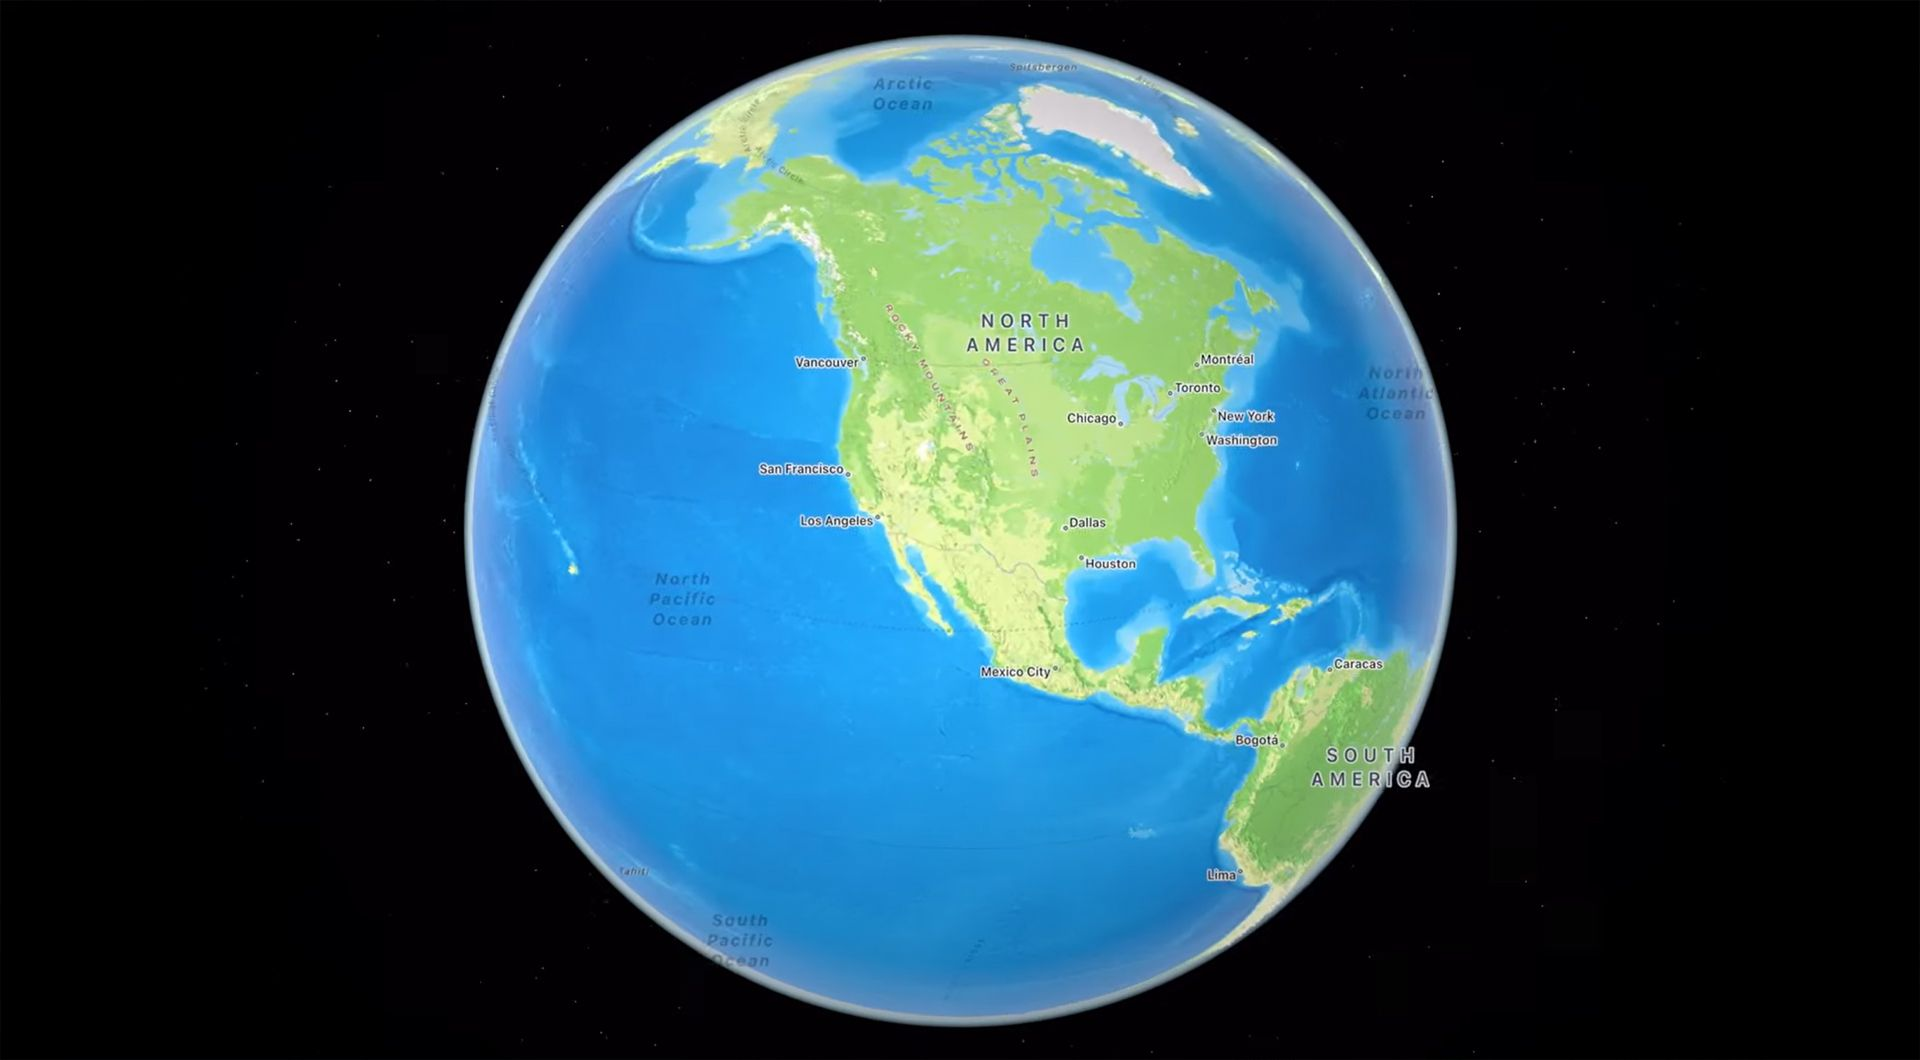 iOS 15 Apple Maps new 3D globe of the Earth feature